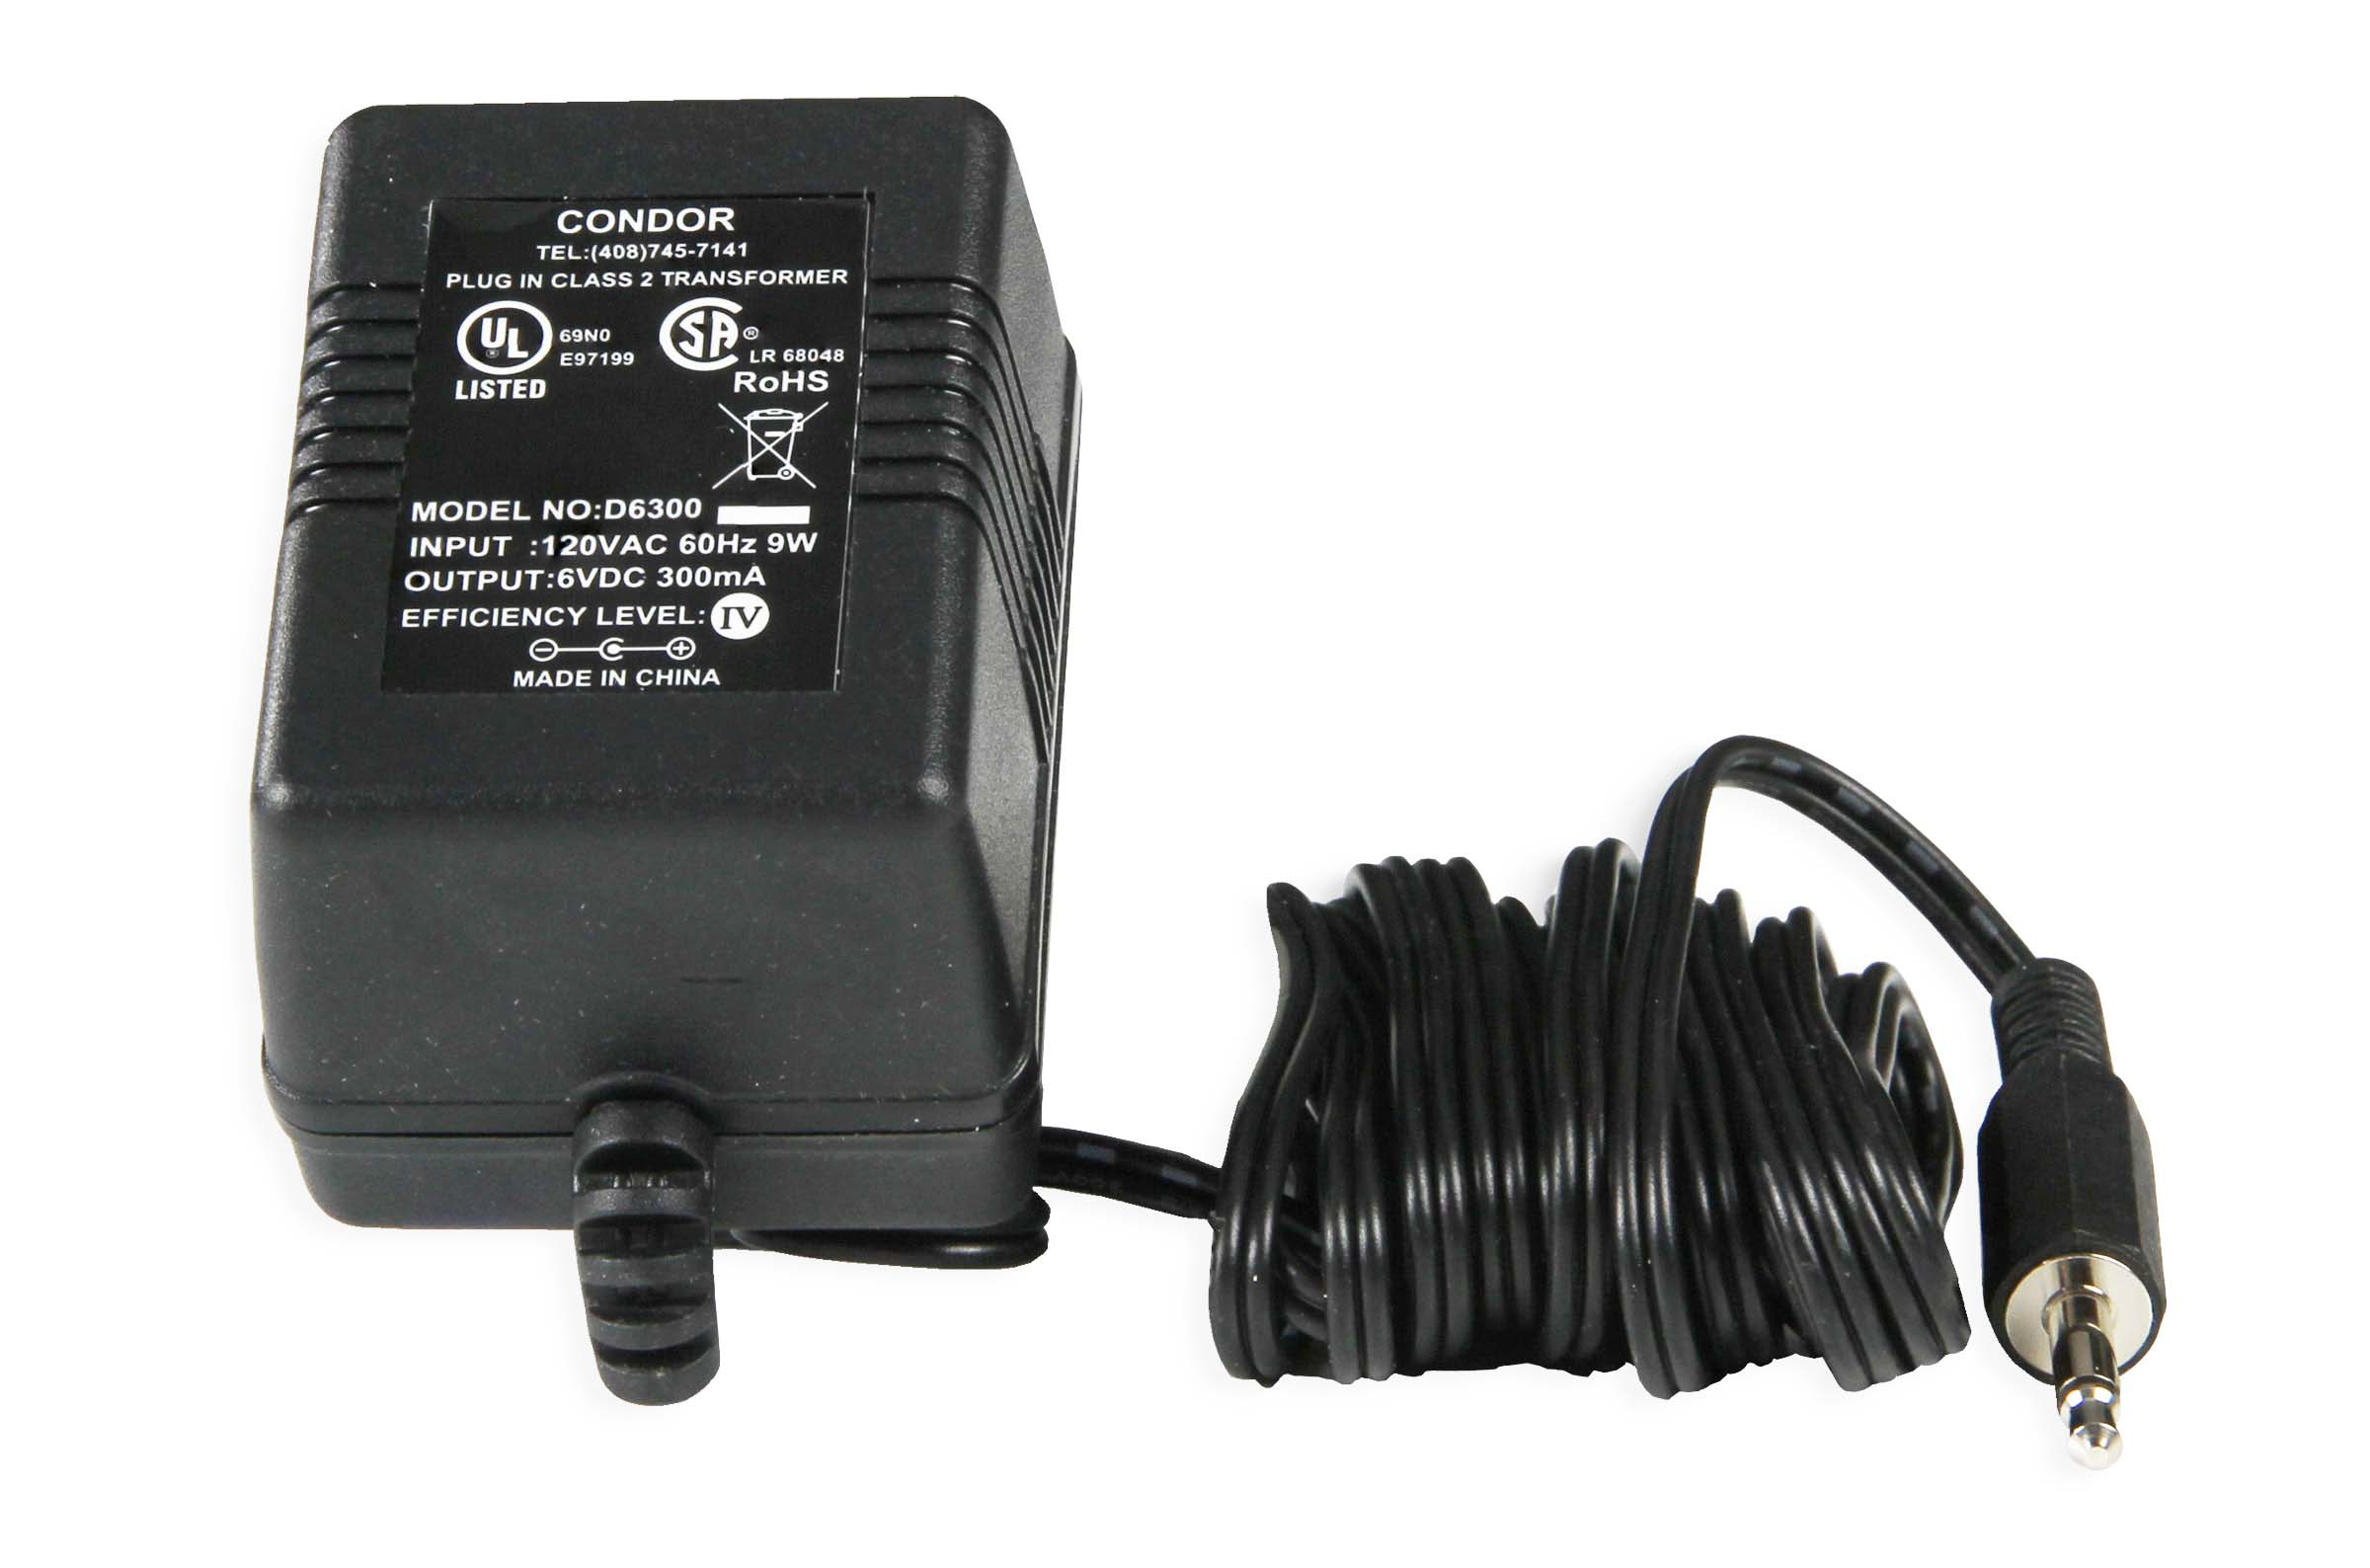 Global Specialties LD-1-PB-501 AC Adapter